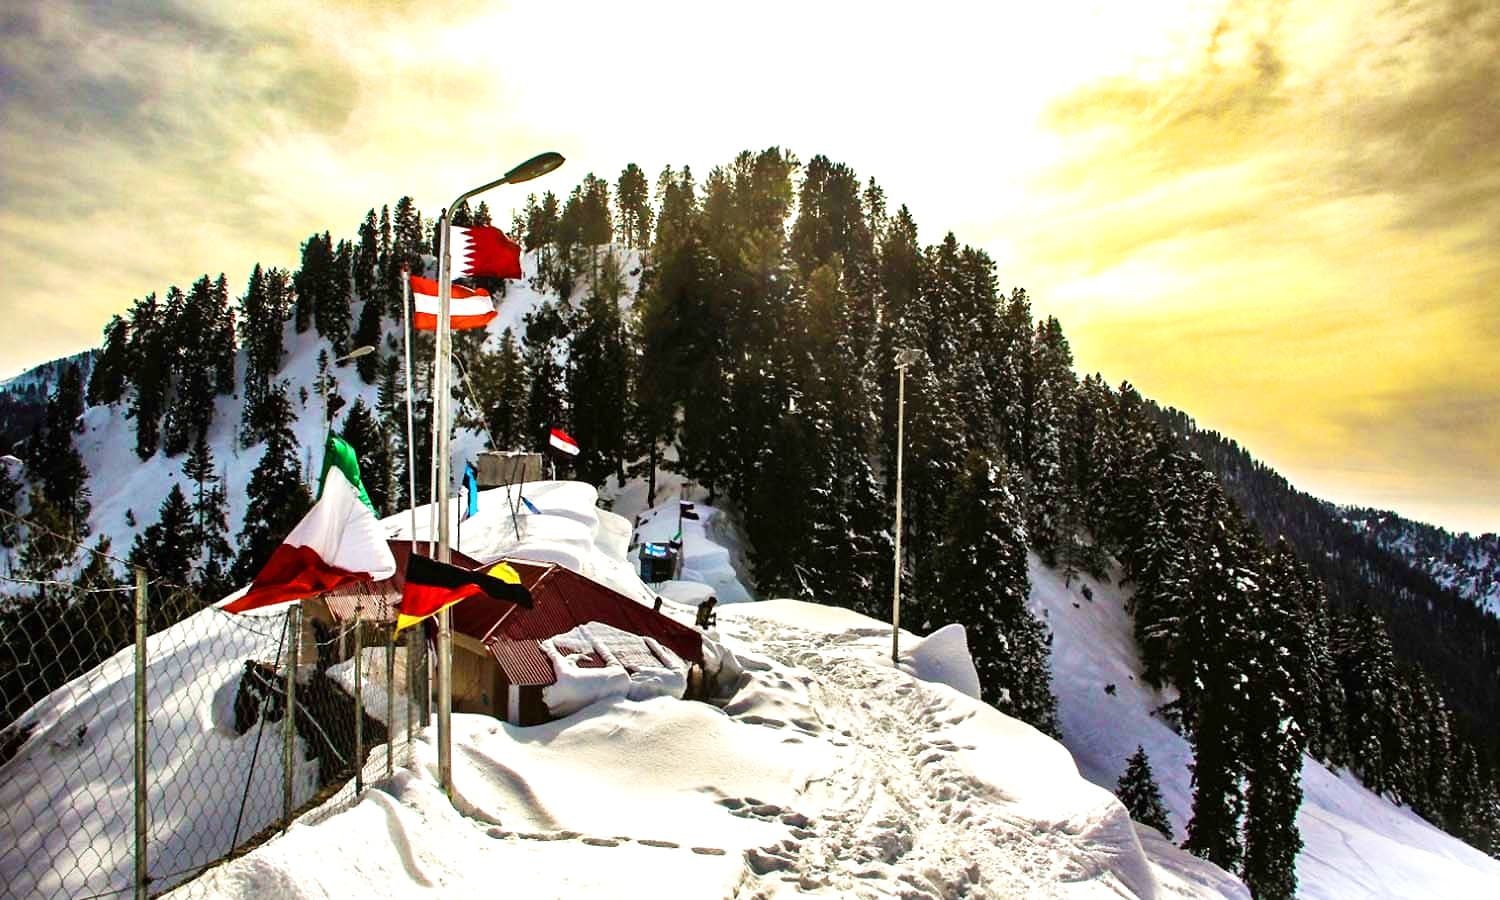 Flags of participating countries hoisted at the hill station. ─ Photo by author